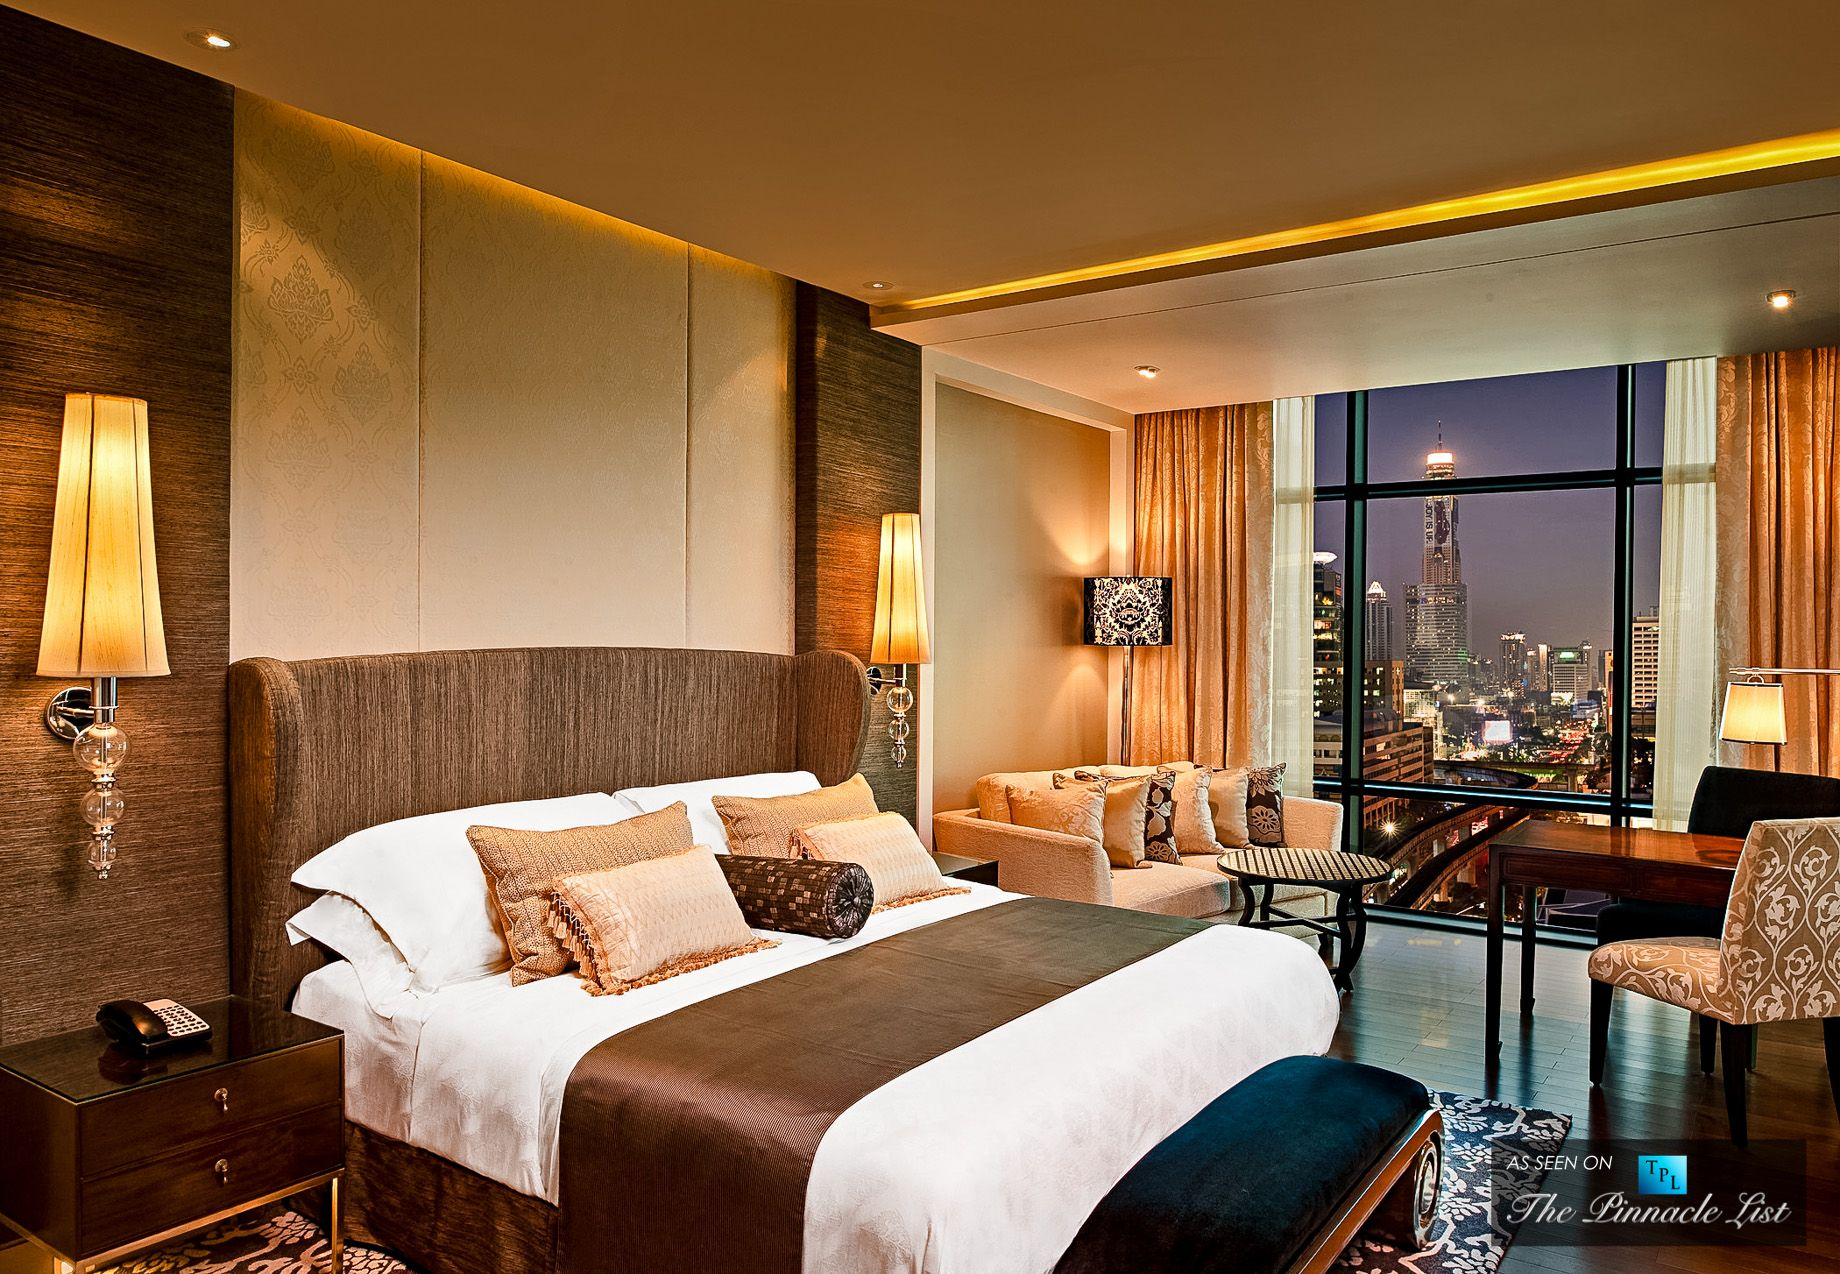 St regis luxury hotel bangkok thailand grand deluxe for Bedroom ideas luxury